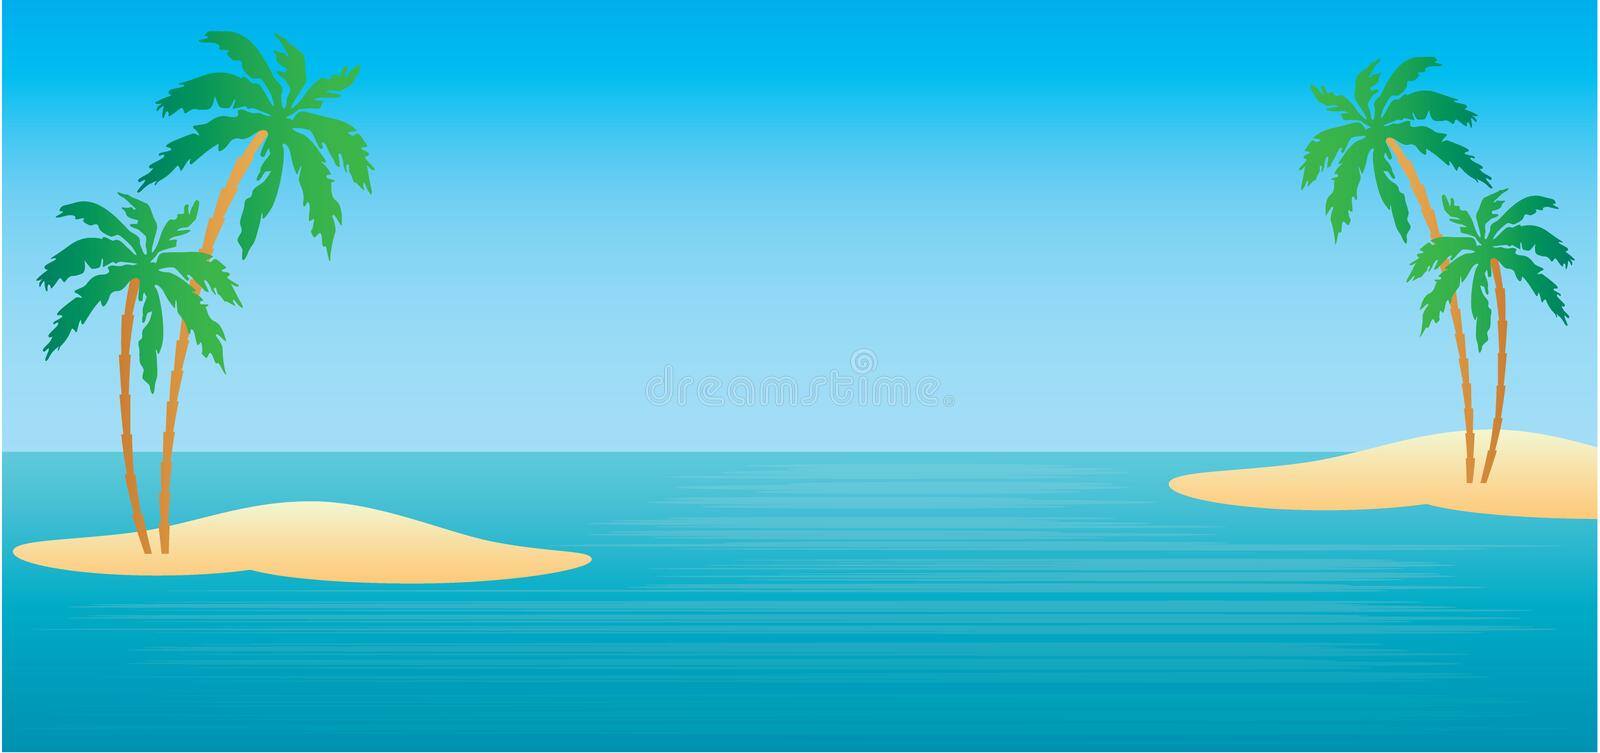 Tropical islands with palm trees stock illustration